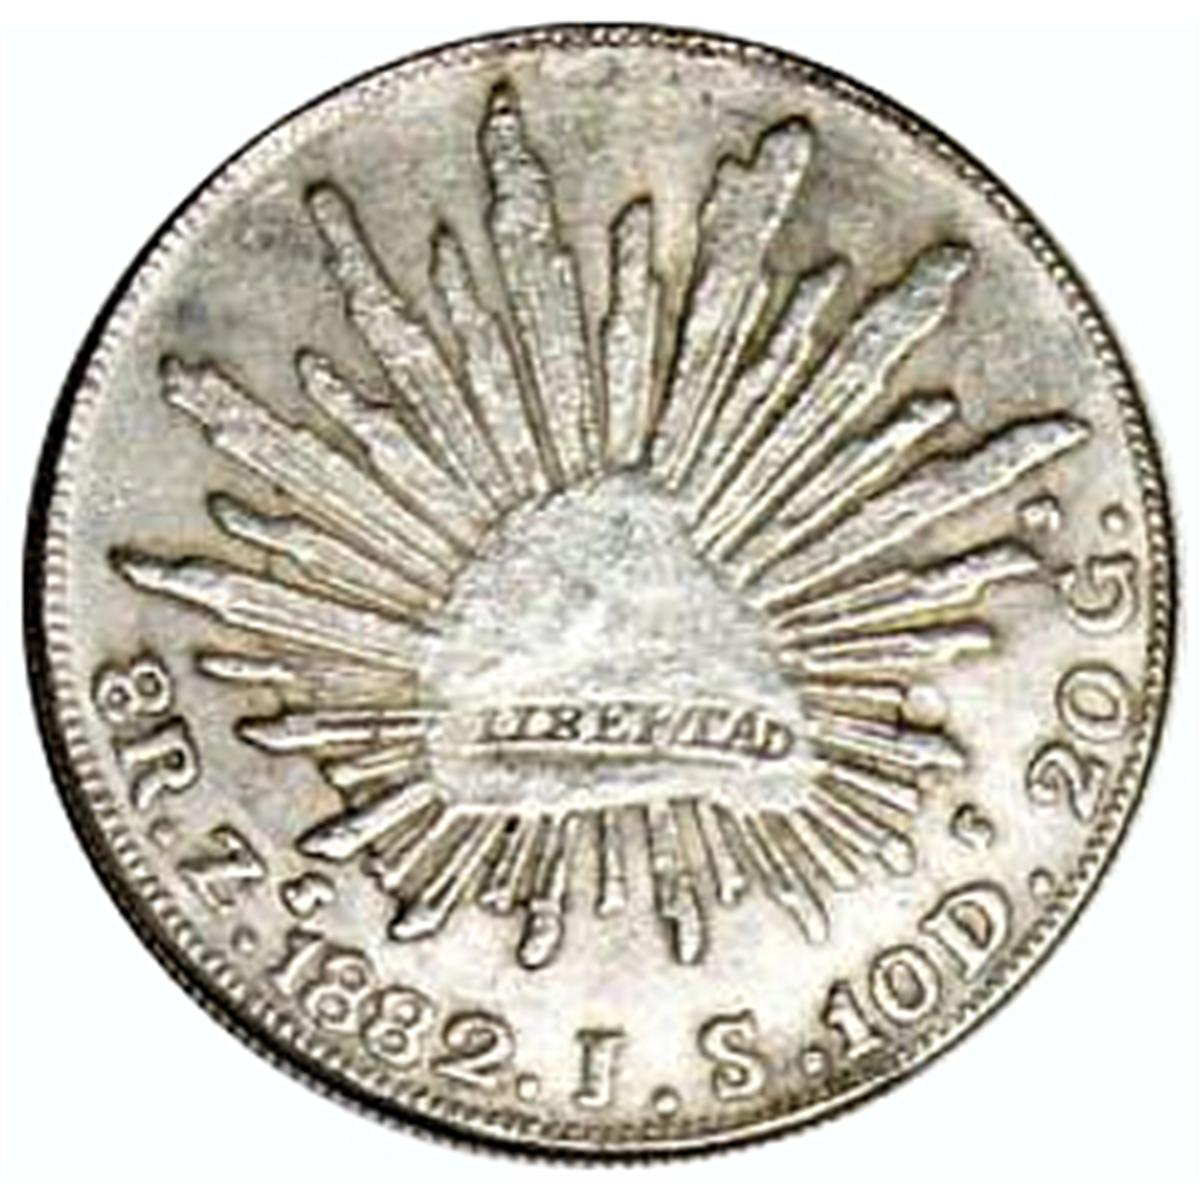 10ea 1882 Zs JS MEXICO SILVER 8 REALES UNC ALL FOR ONE MONEY